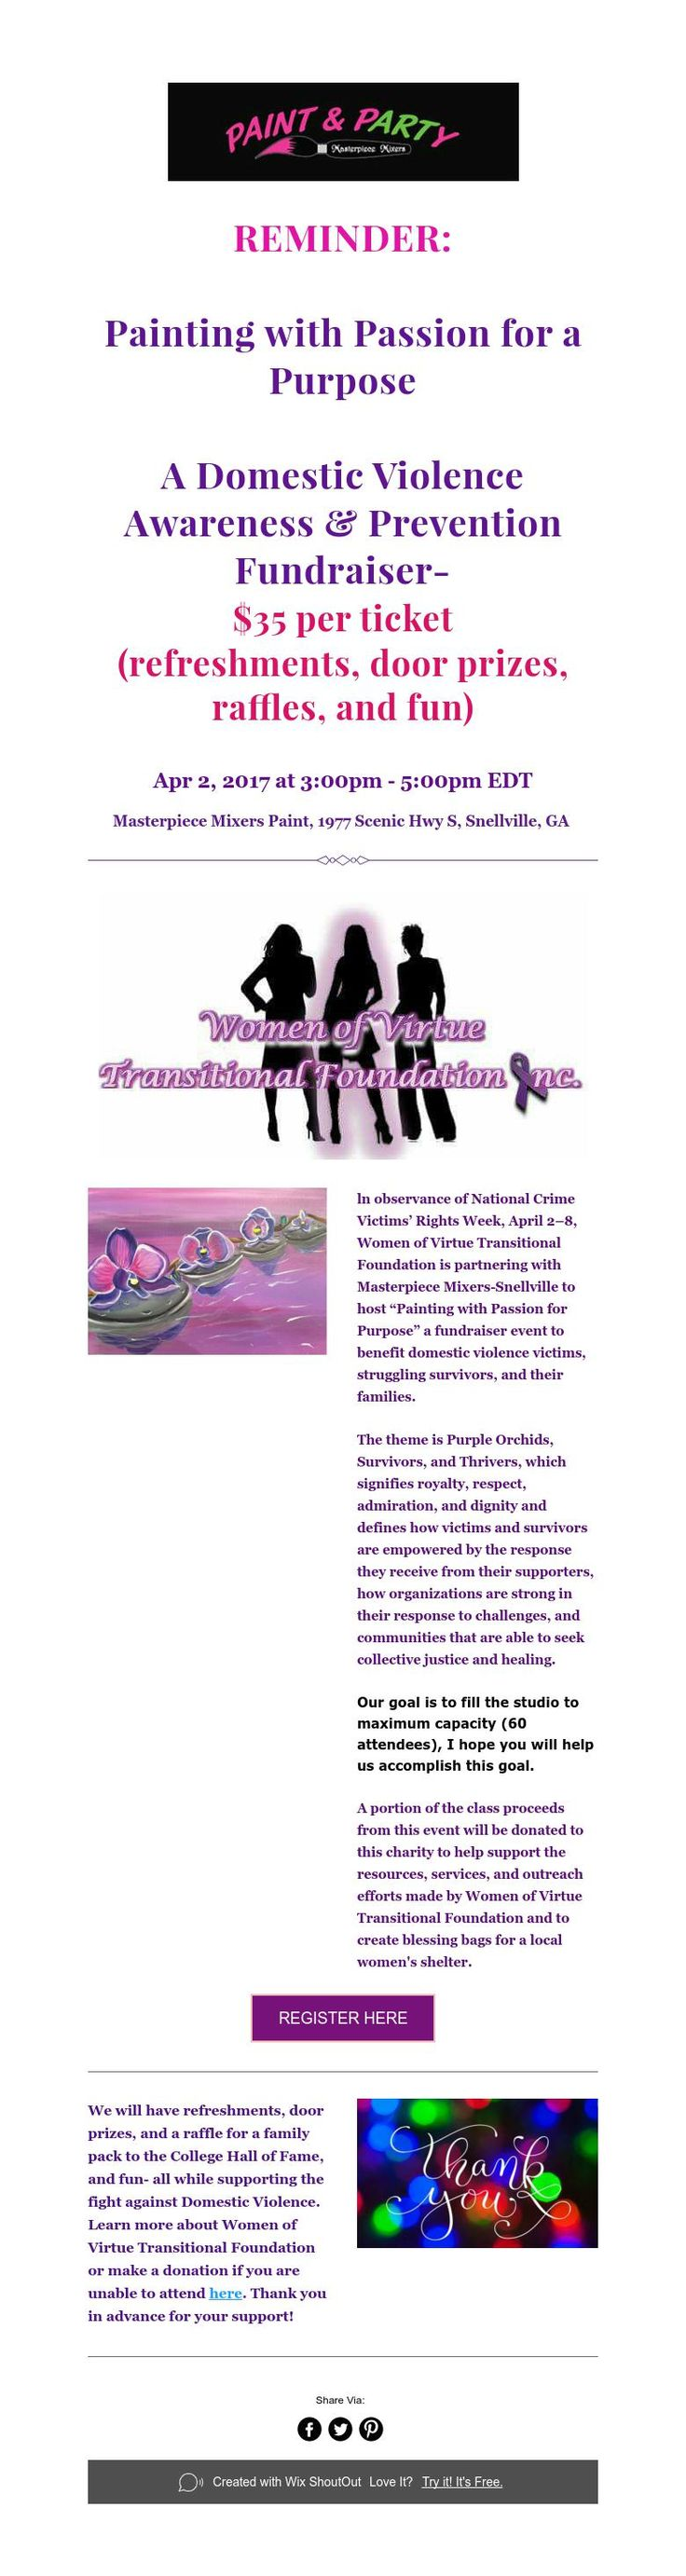 Ideas For Giving Away Door Prizes not bad for a door prize does anyone airbrush and have tips or ideas for Reminder Painting With Passion For A Purpose A Domestic Violence Awareness Prevention Fundraiser